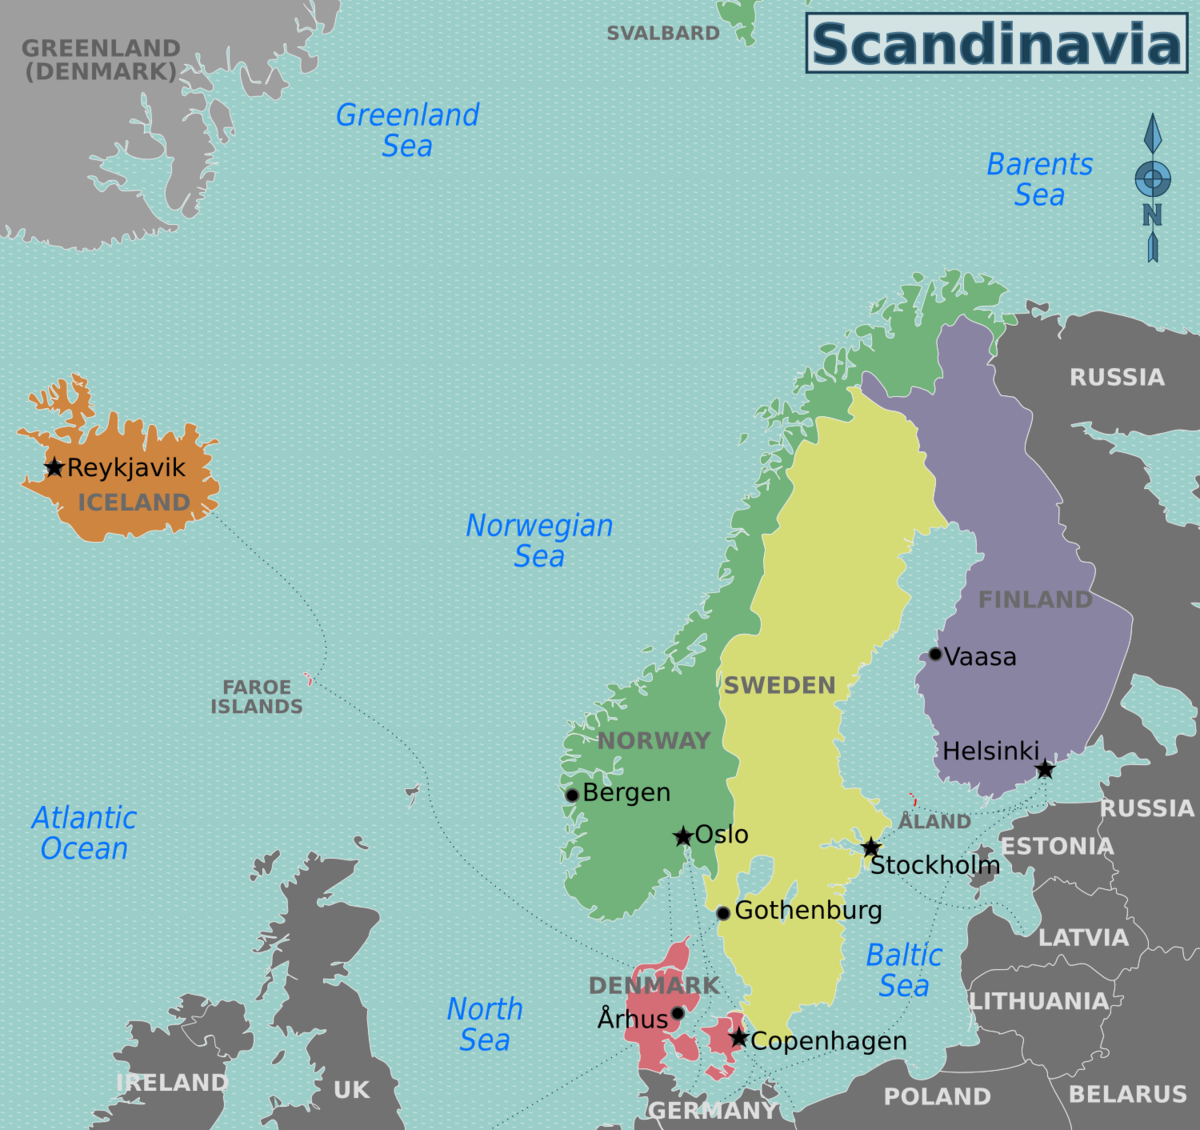 Natural Resources Scandinavia